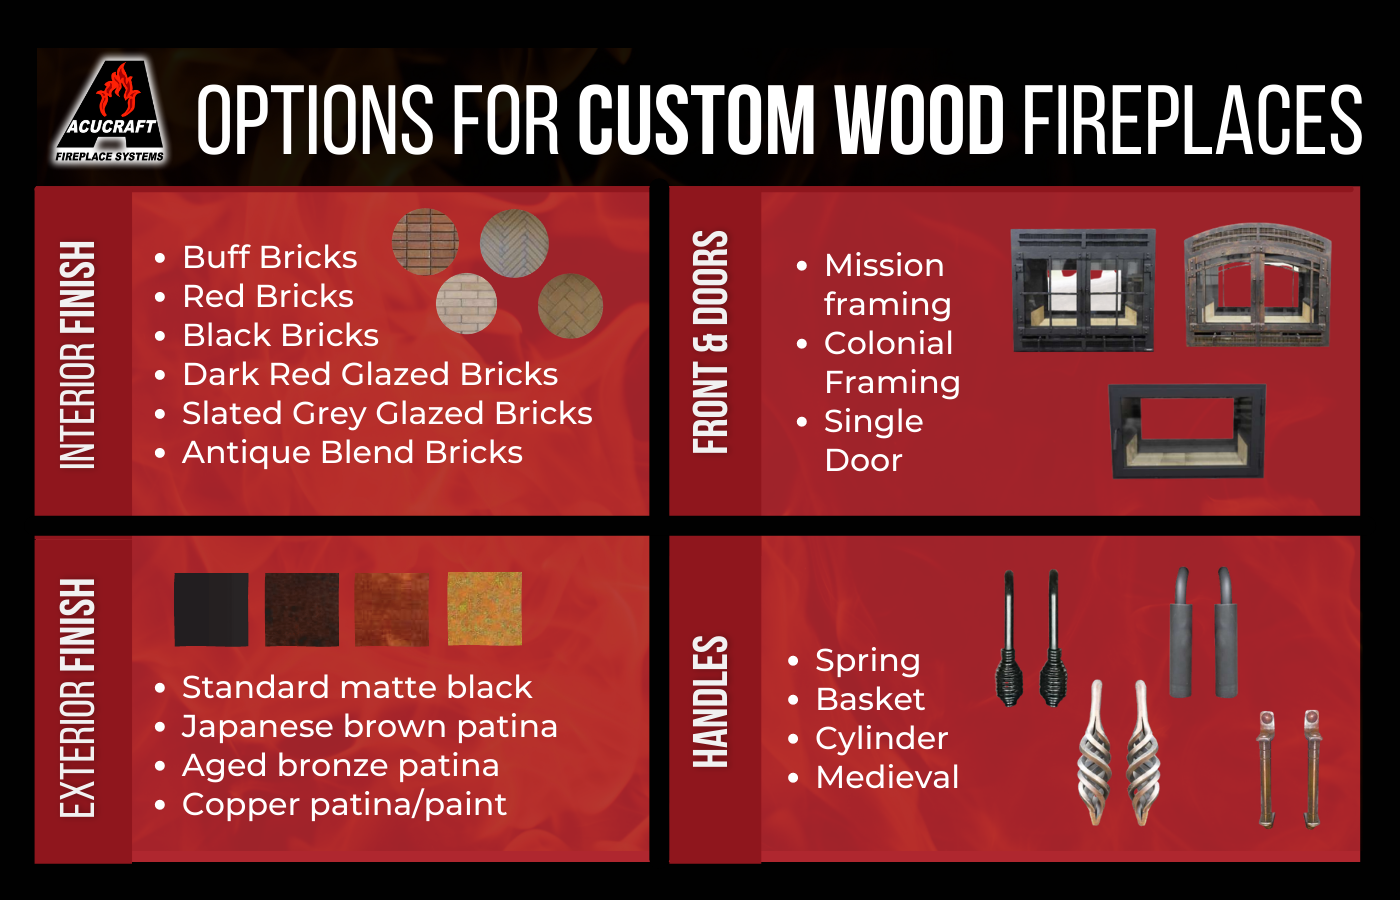 Infographic representing custom wood fireplace options